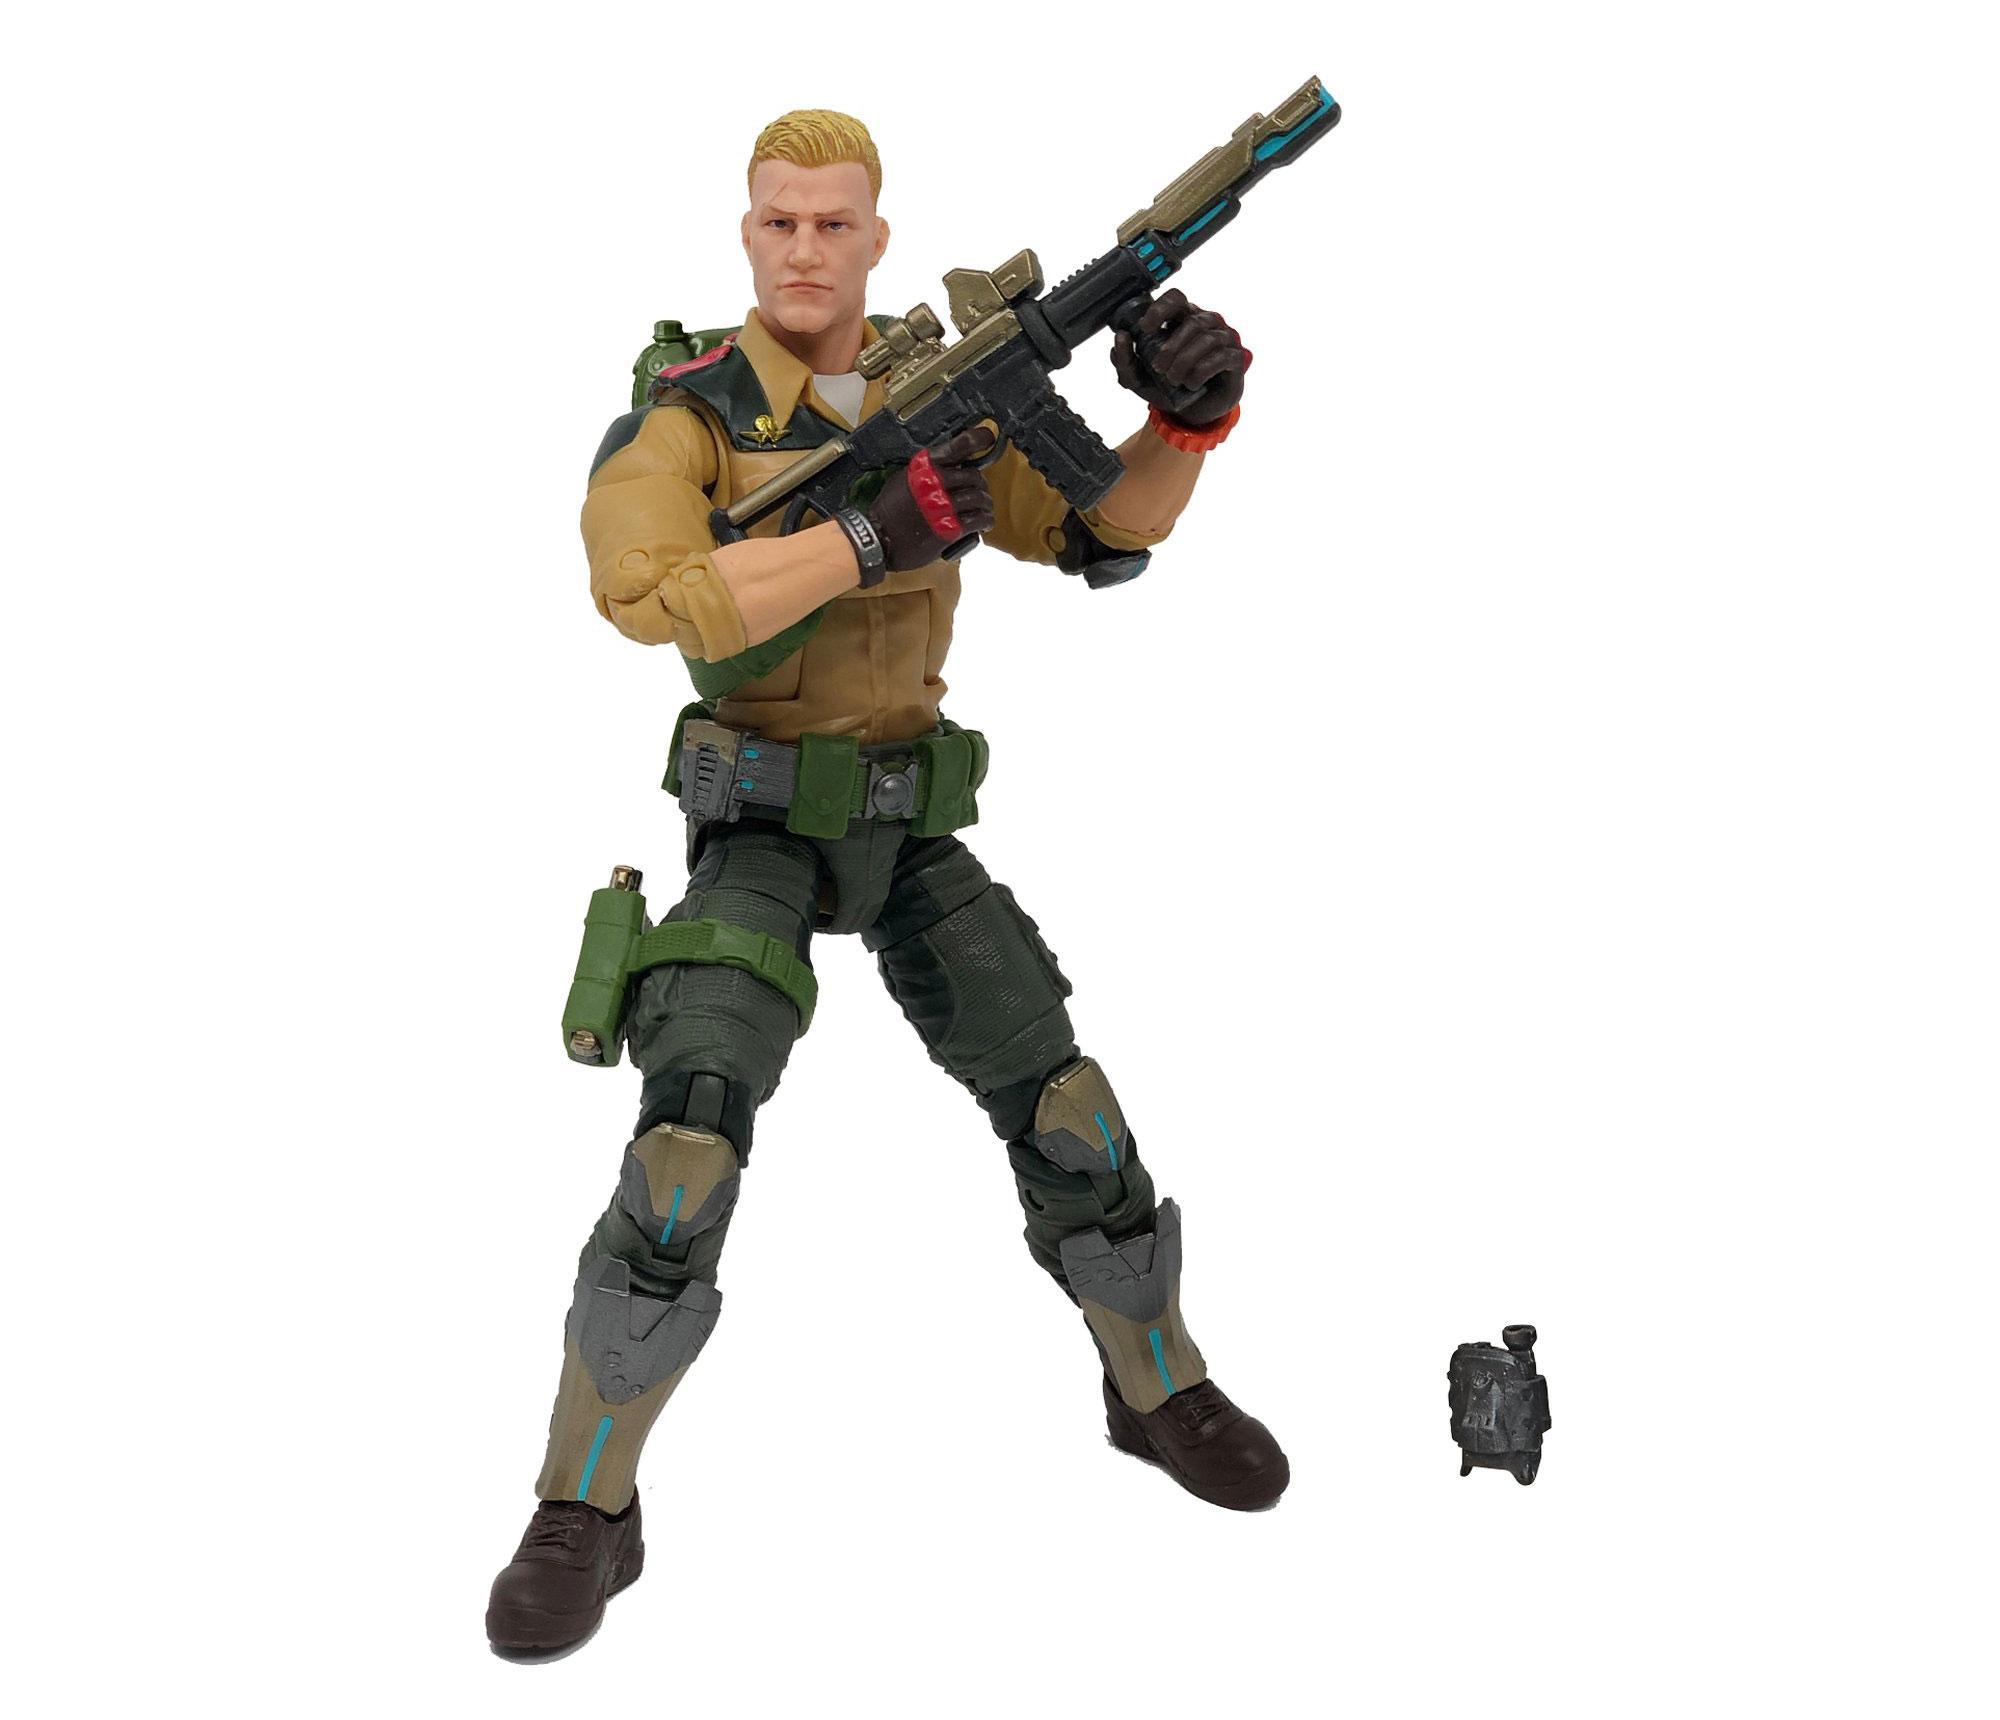 gi-joe-classified-duke-action-figure